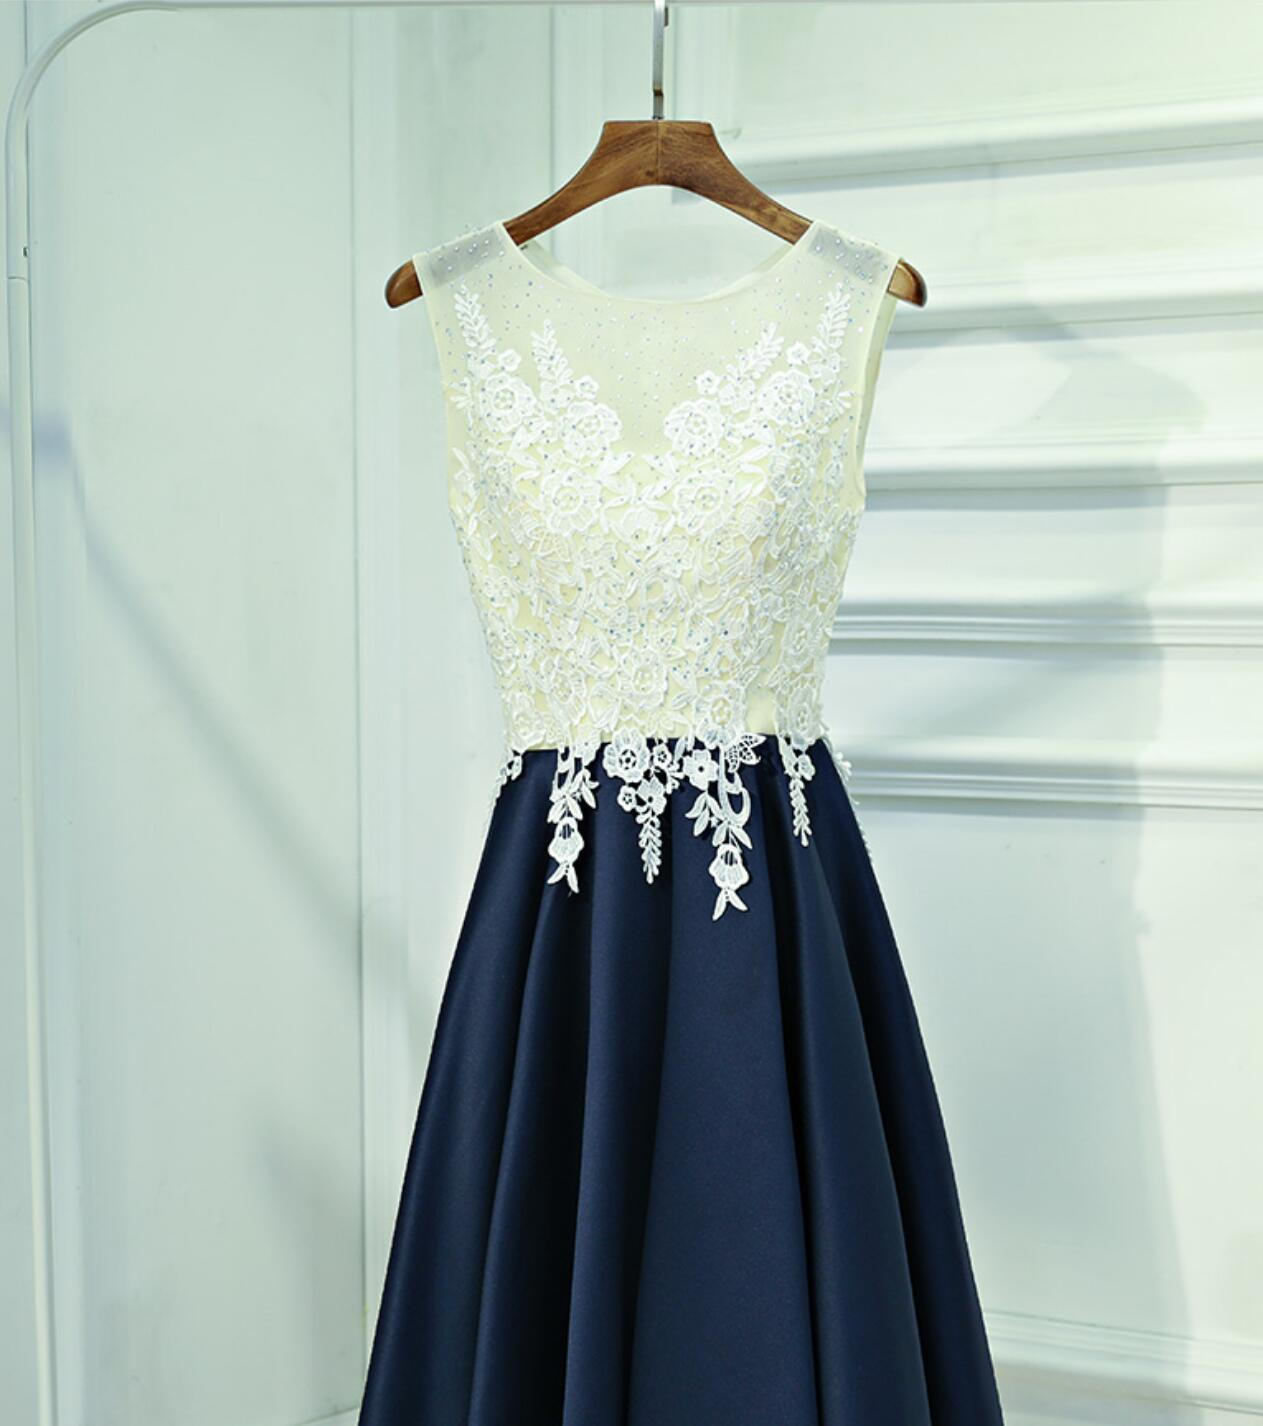 f0b105bdc04 See Through Lace Navy Skirt Short Homecoming Prom Dresses ...